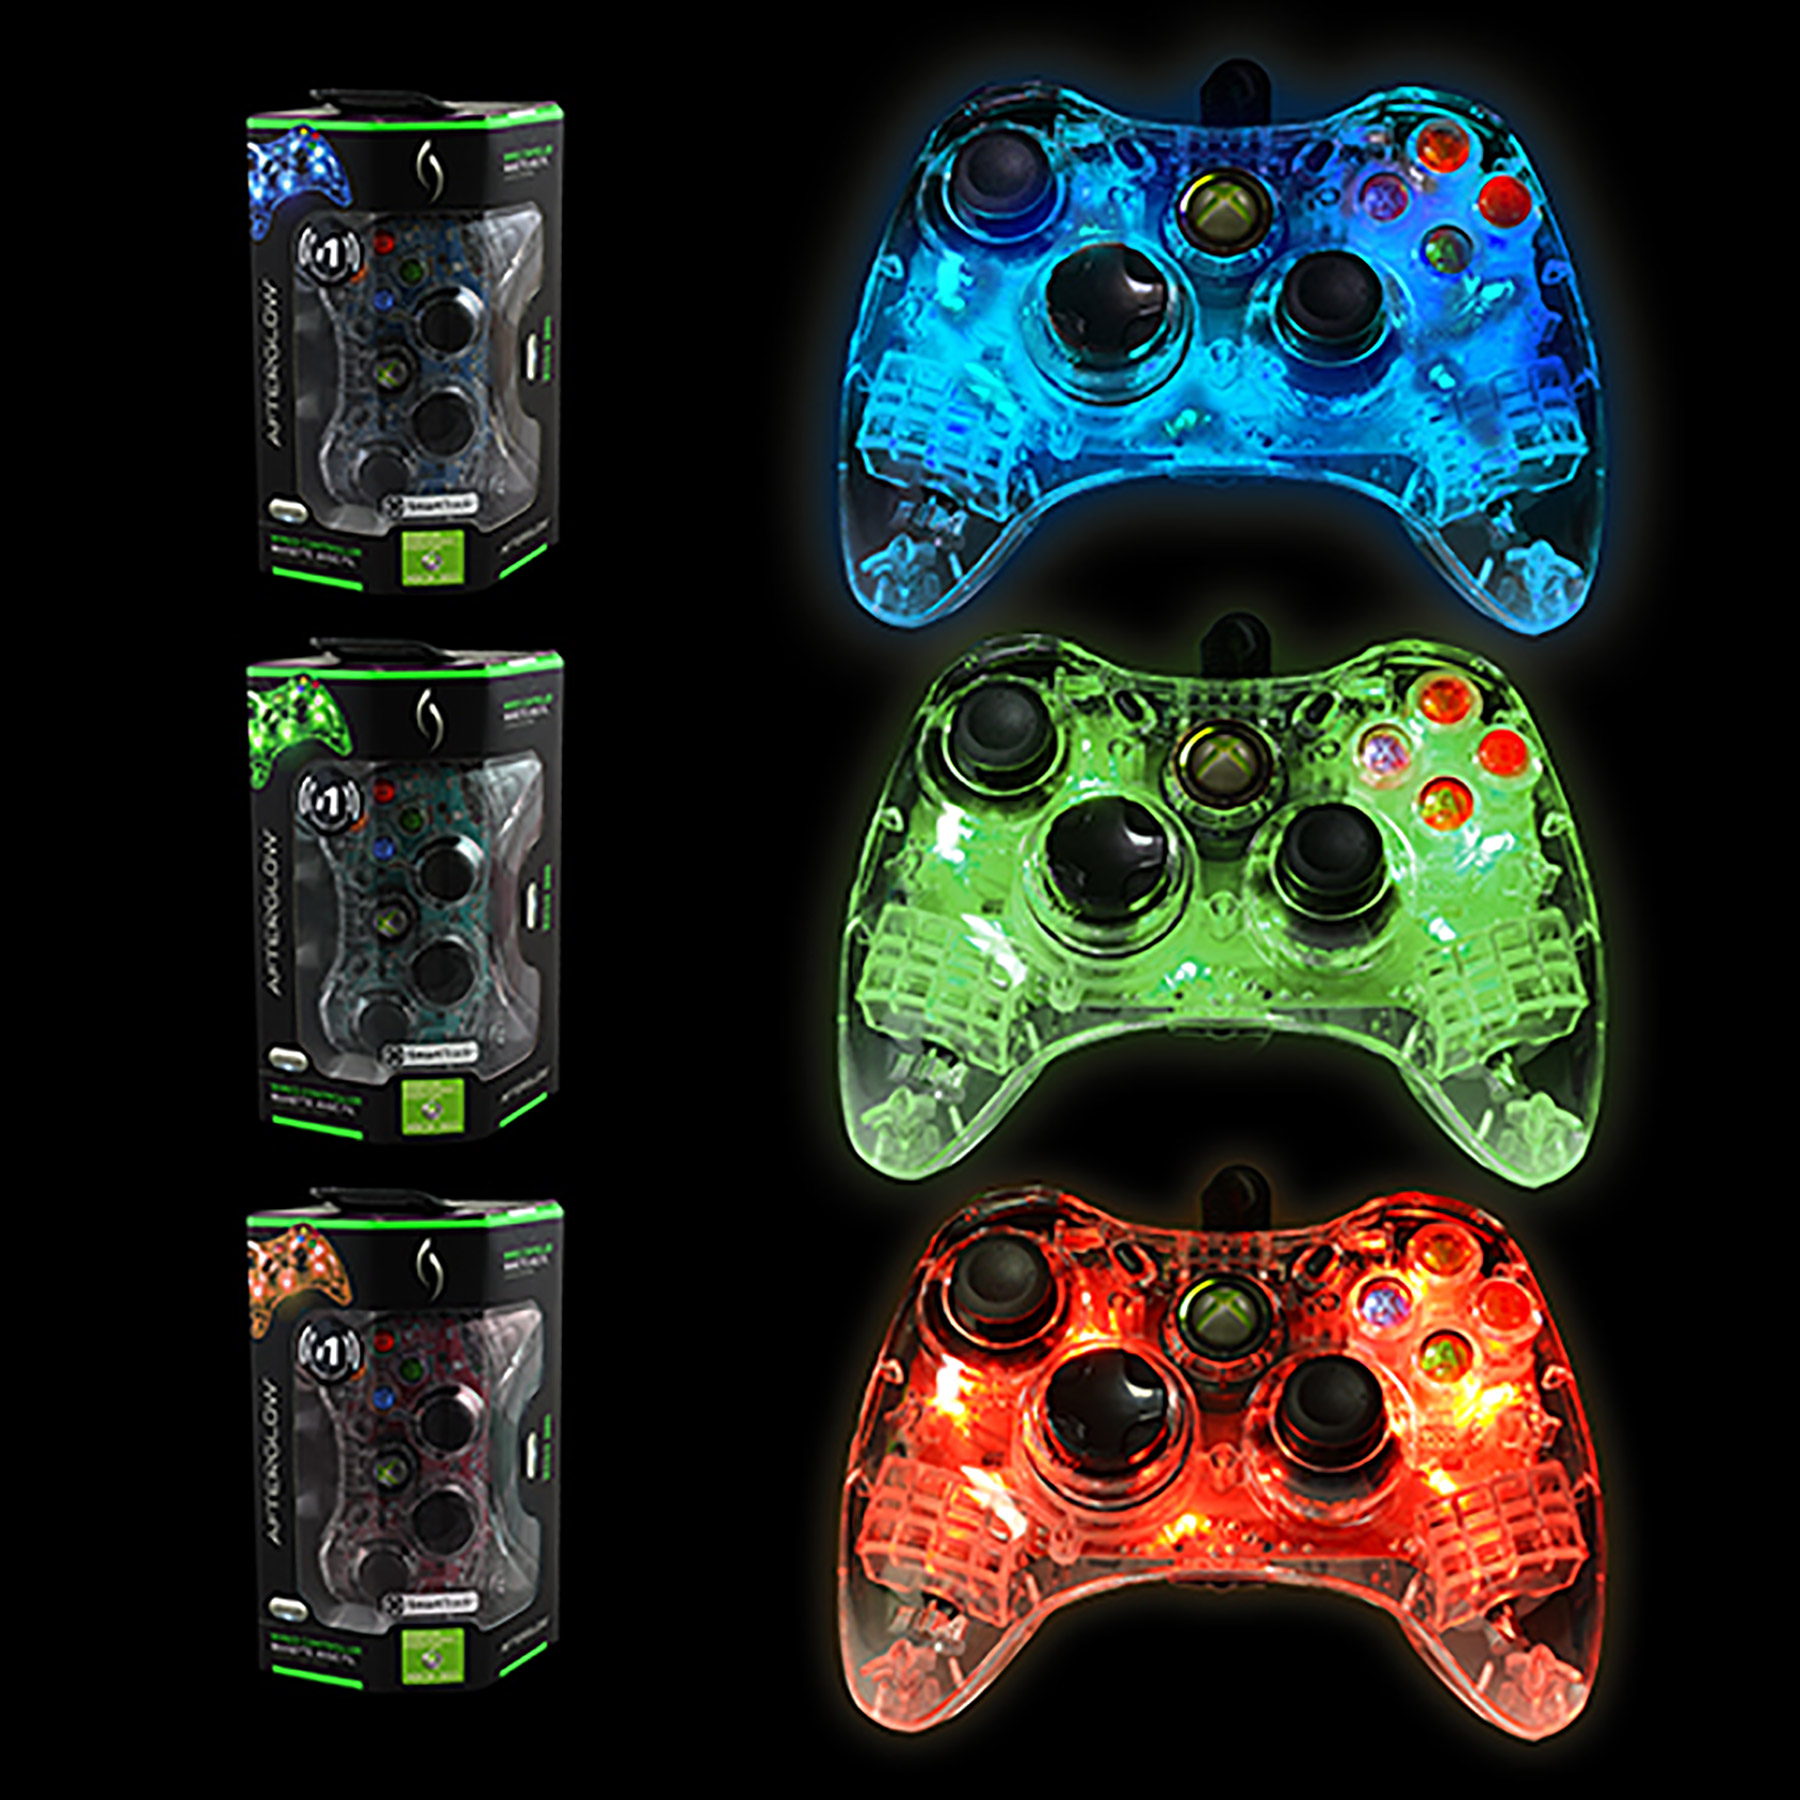 Afterglow Xbox 360 Wired Controller Driver Windows 7: Xbox 360 \u2013 Controller \u2013 Wired \u2013 Microsoft Afterglow \u2013 Assorted (PDP)rh:shopgameworld.com,Design